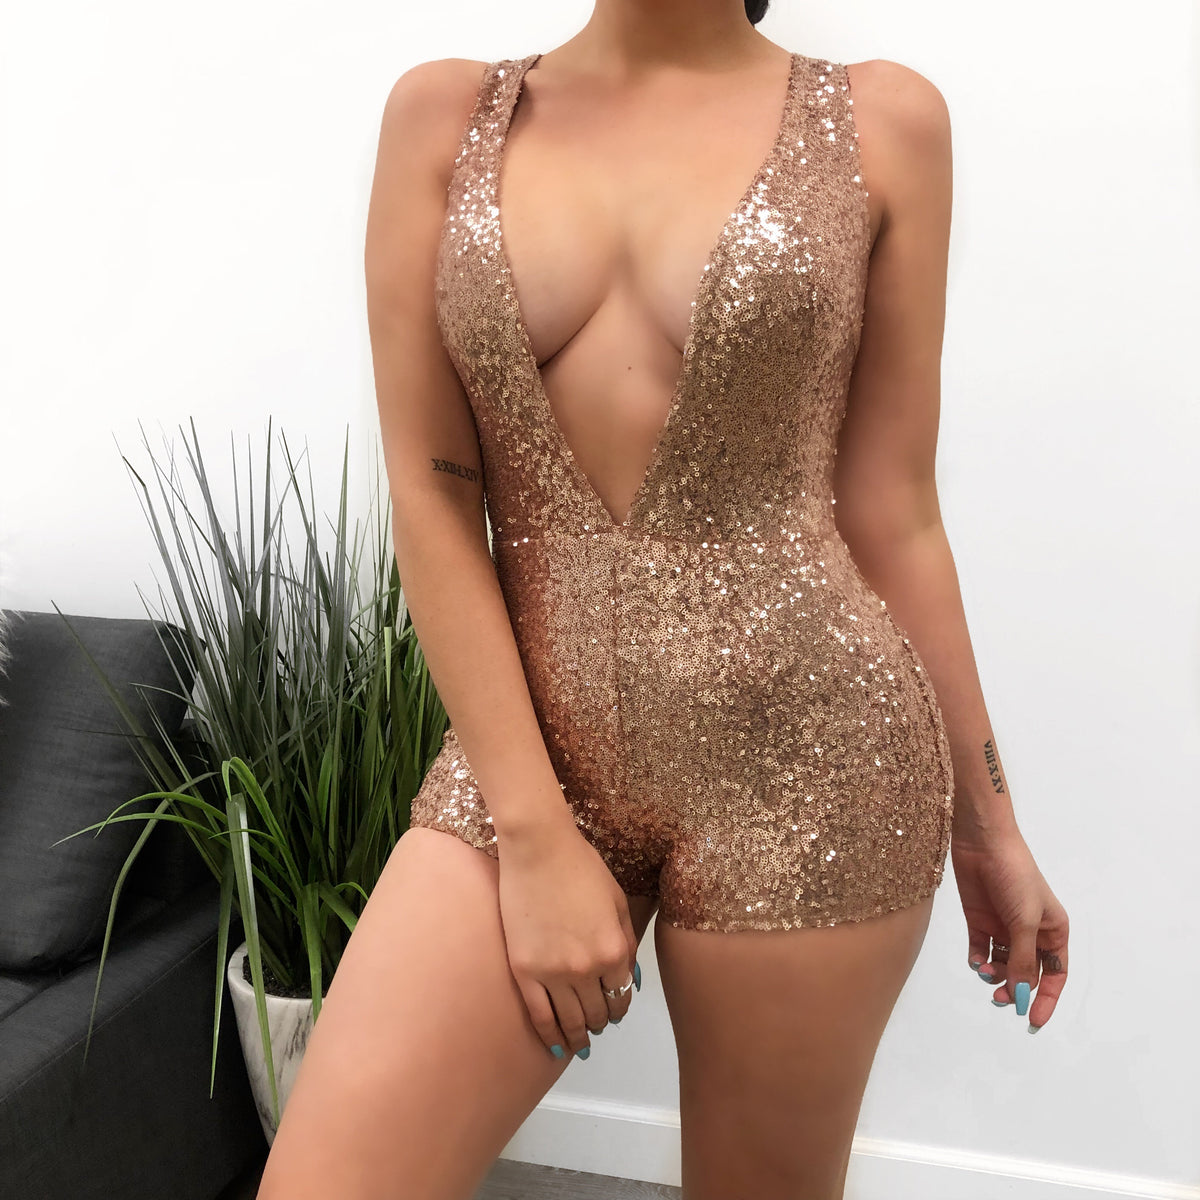 blush sequined romper. tophalf has deep v-cut from neckline to waist. shows cleavage. thick straps for sleeveless.